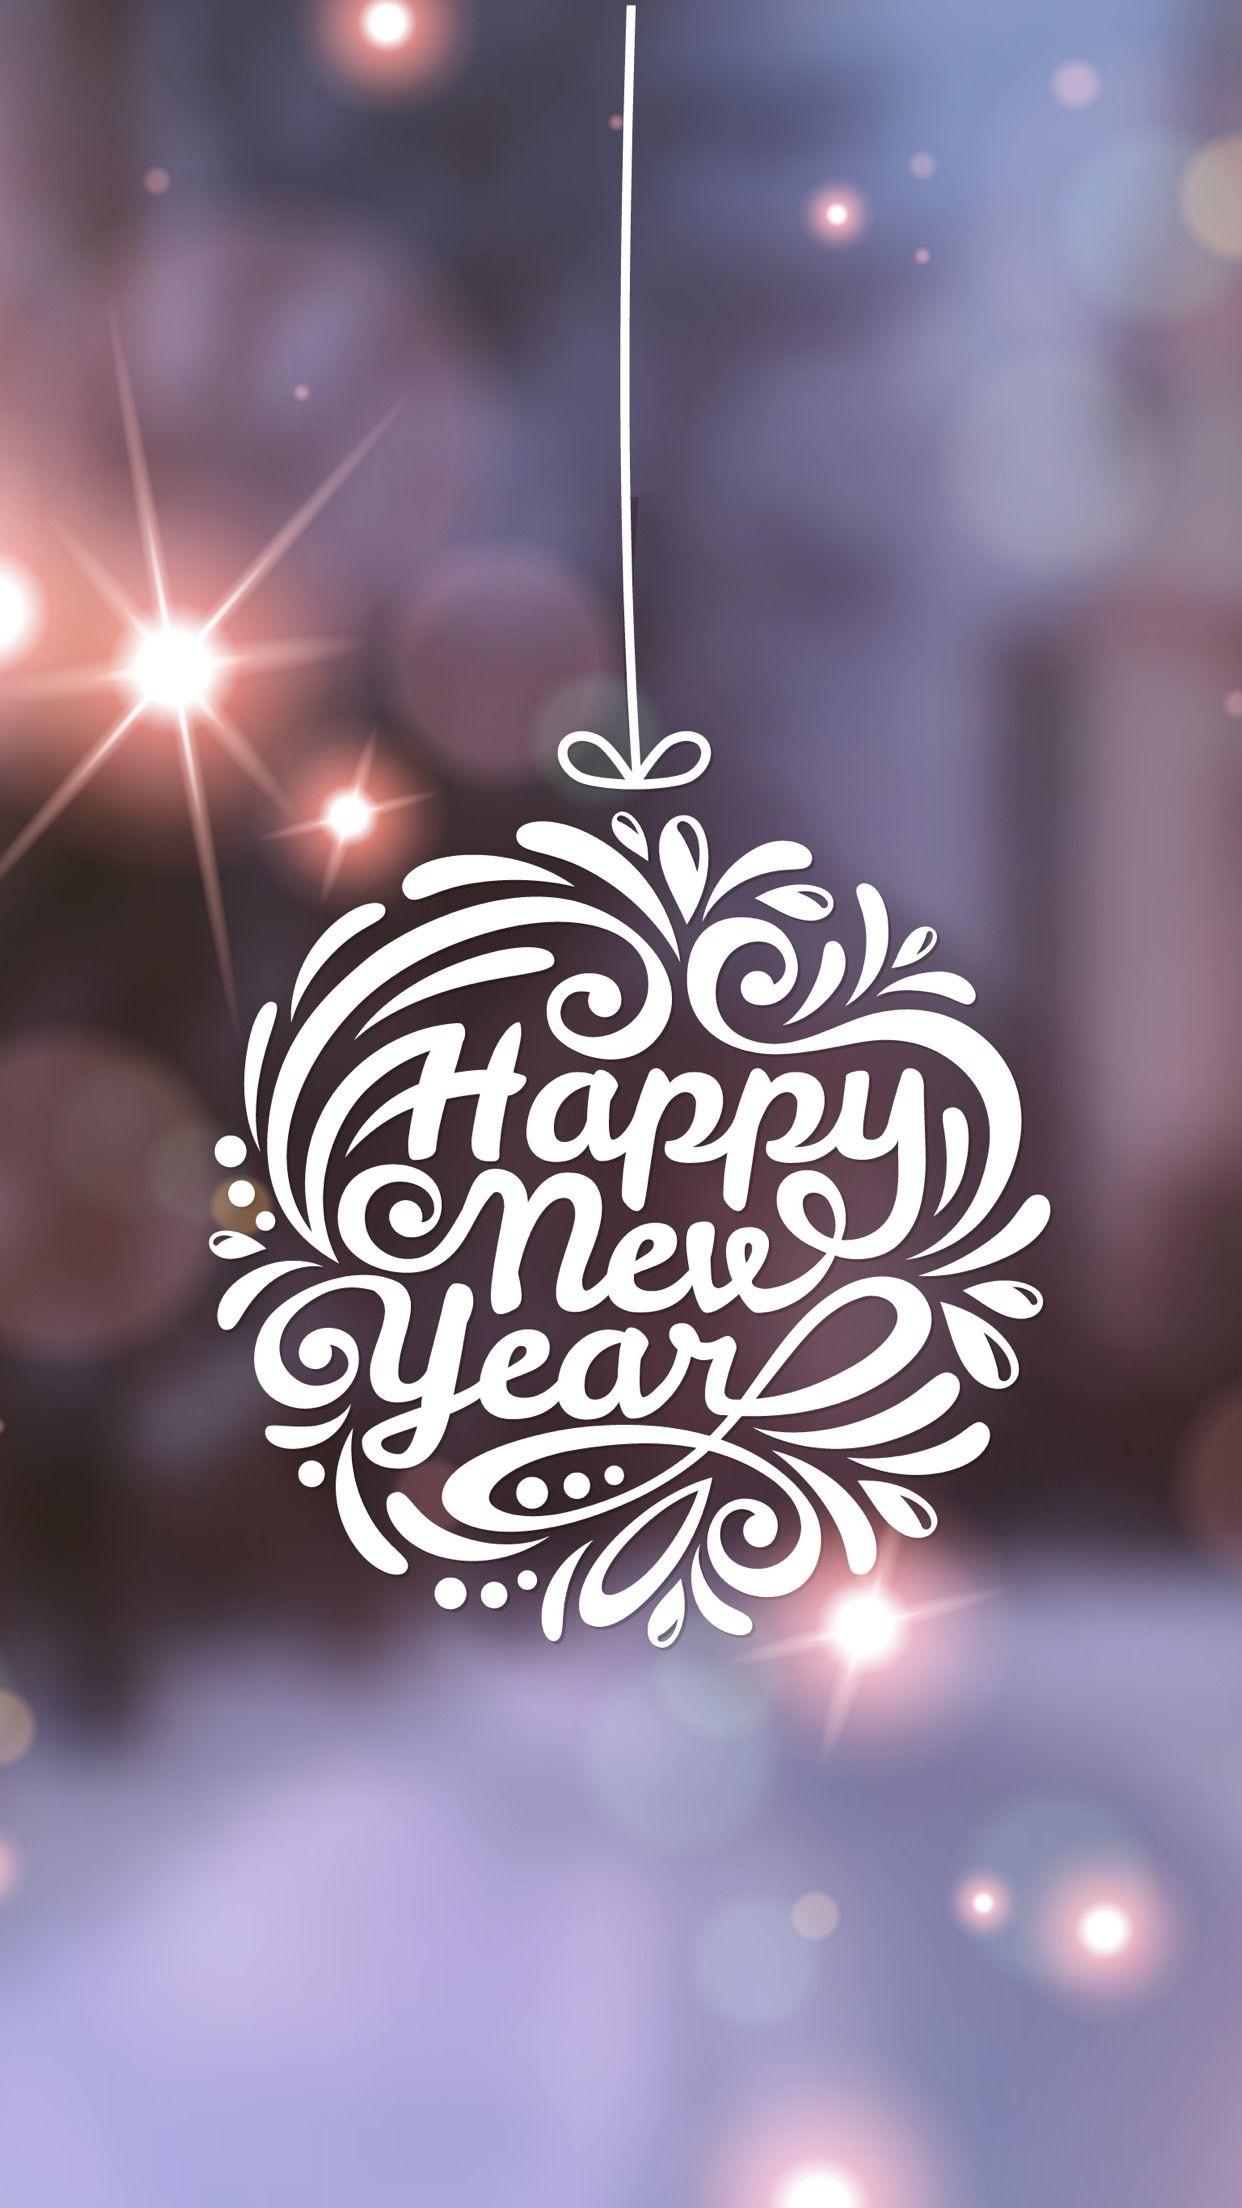 Happy New Year Iphone Wallpapers Top Free Happy New Year Iphone